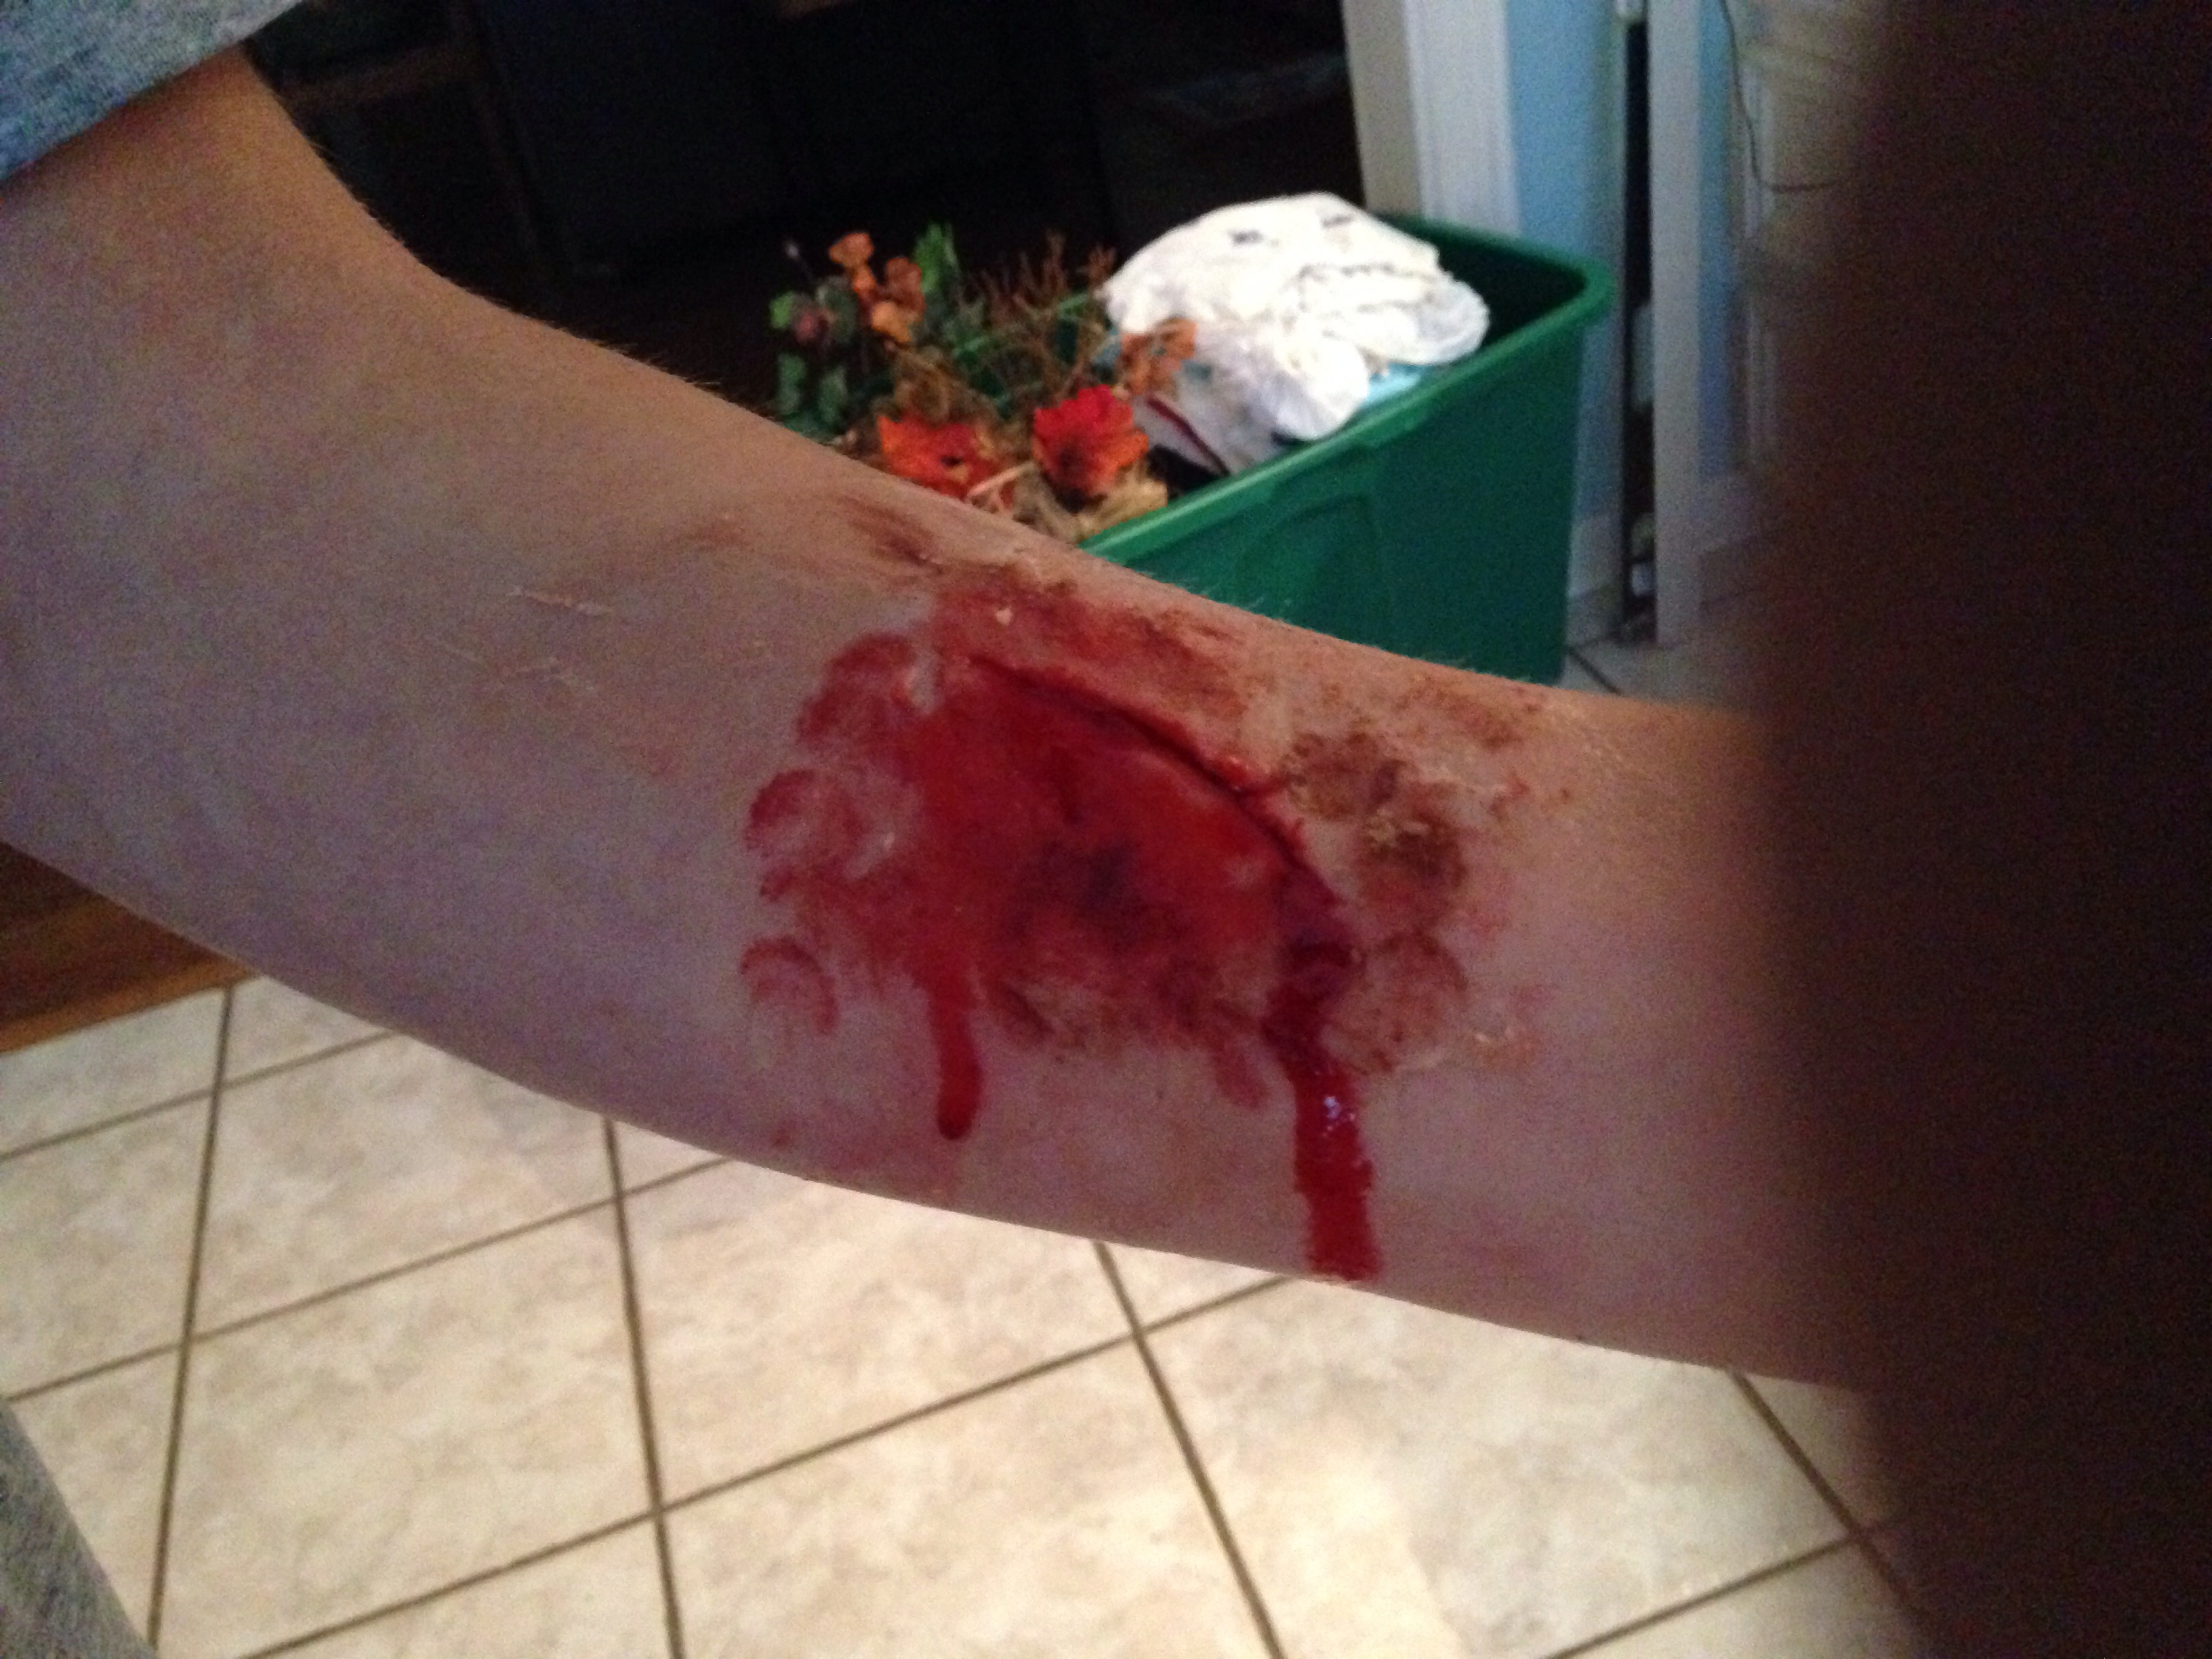 fake wounds from vaseline